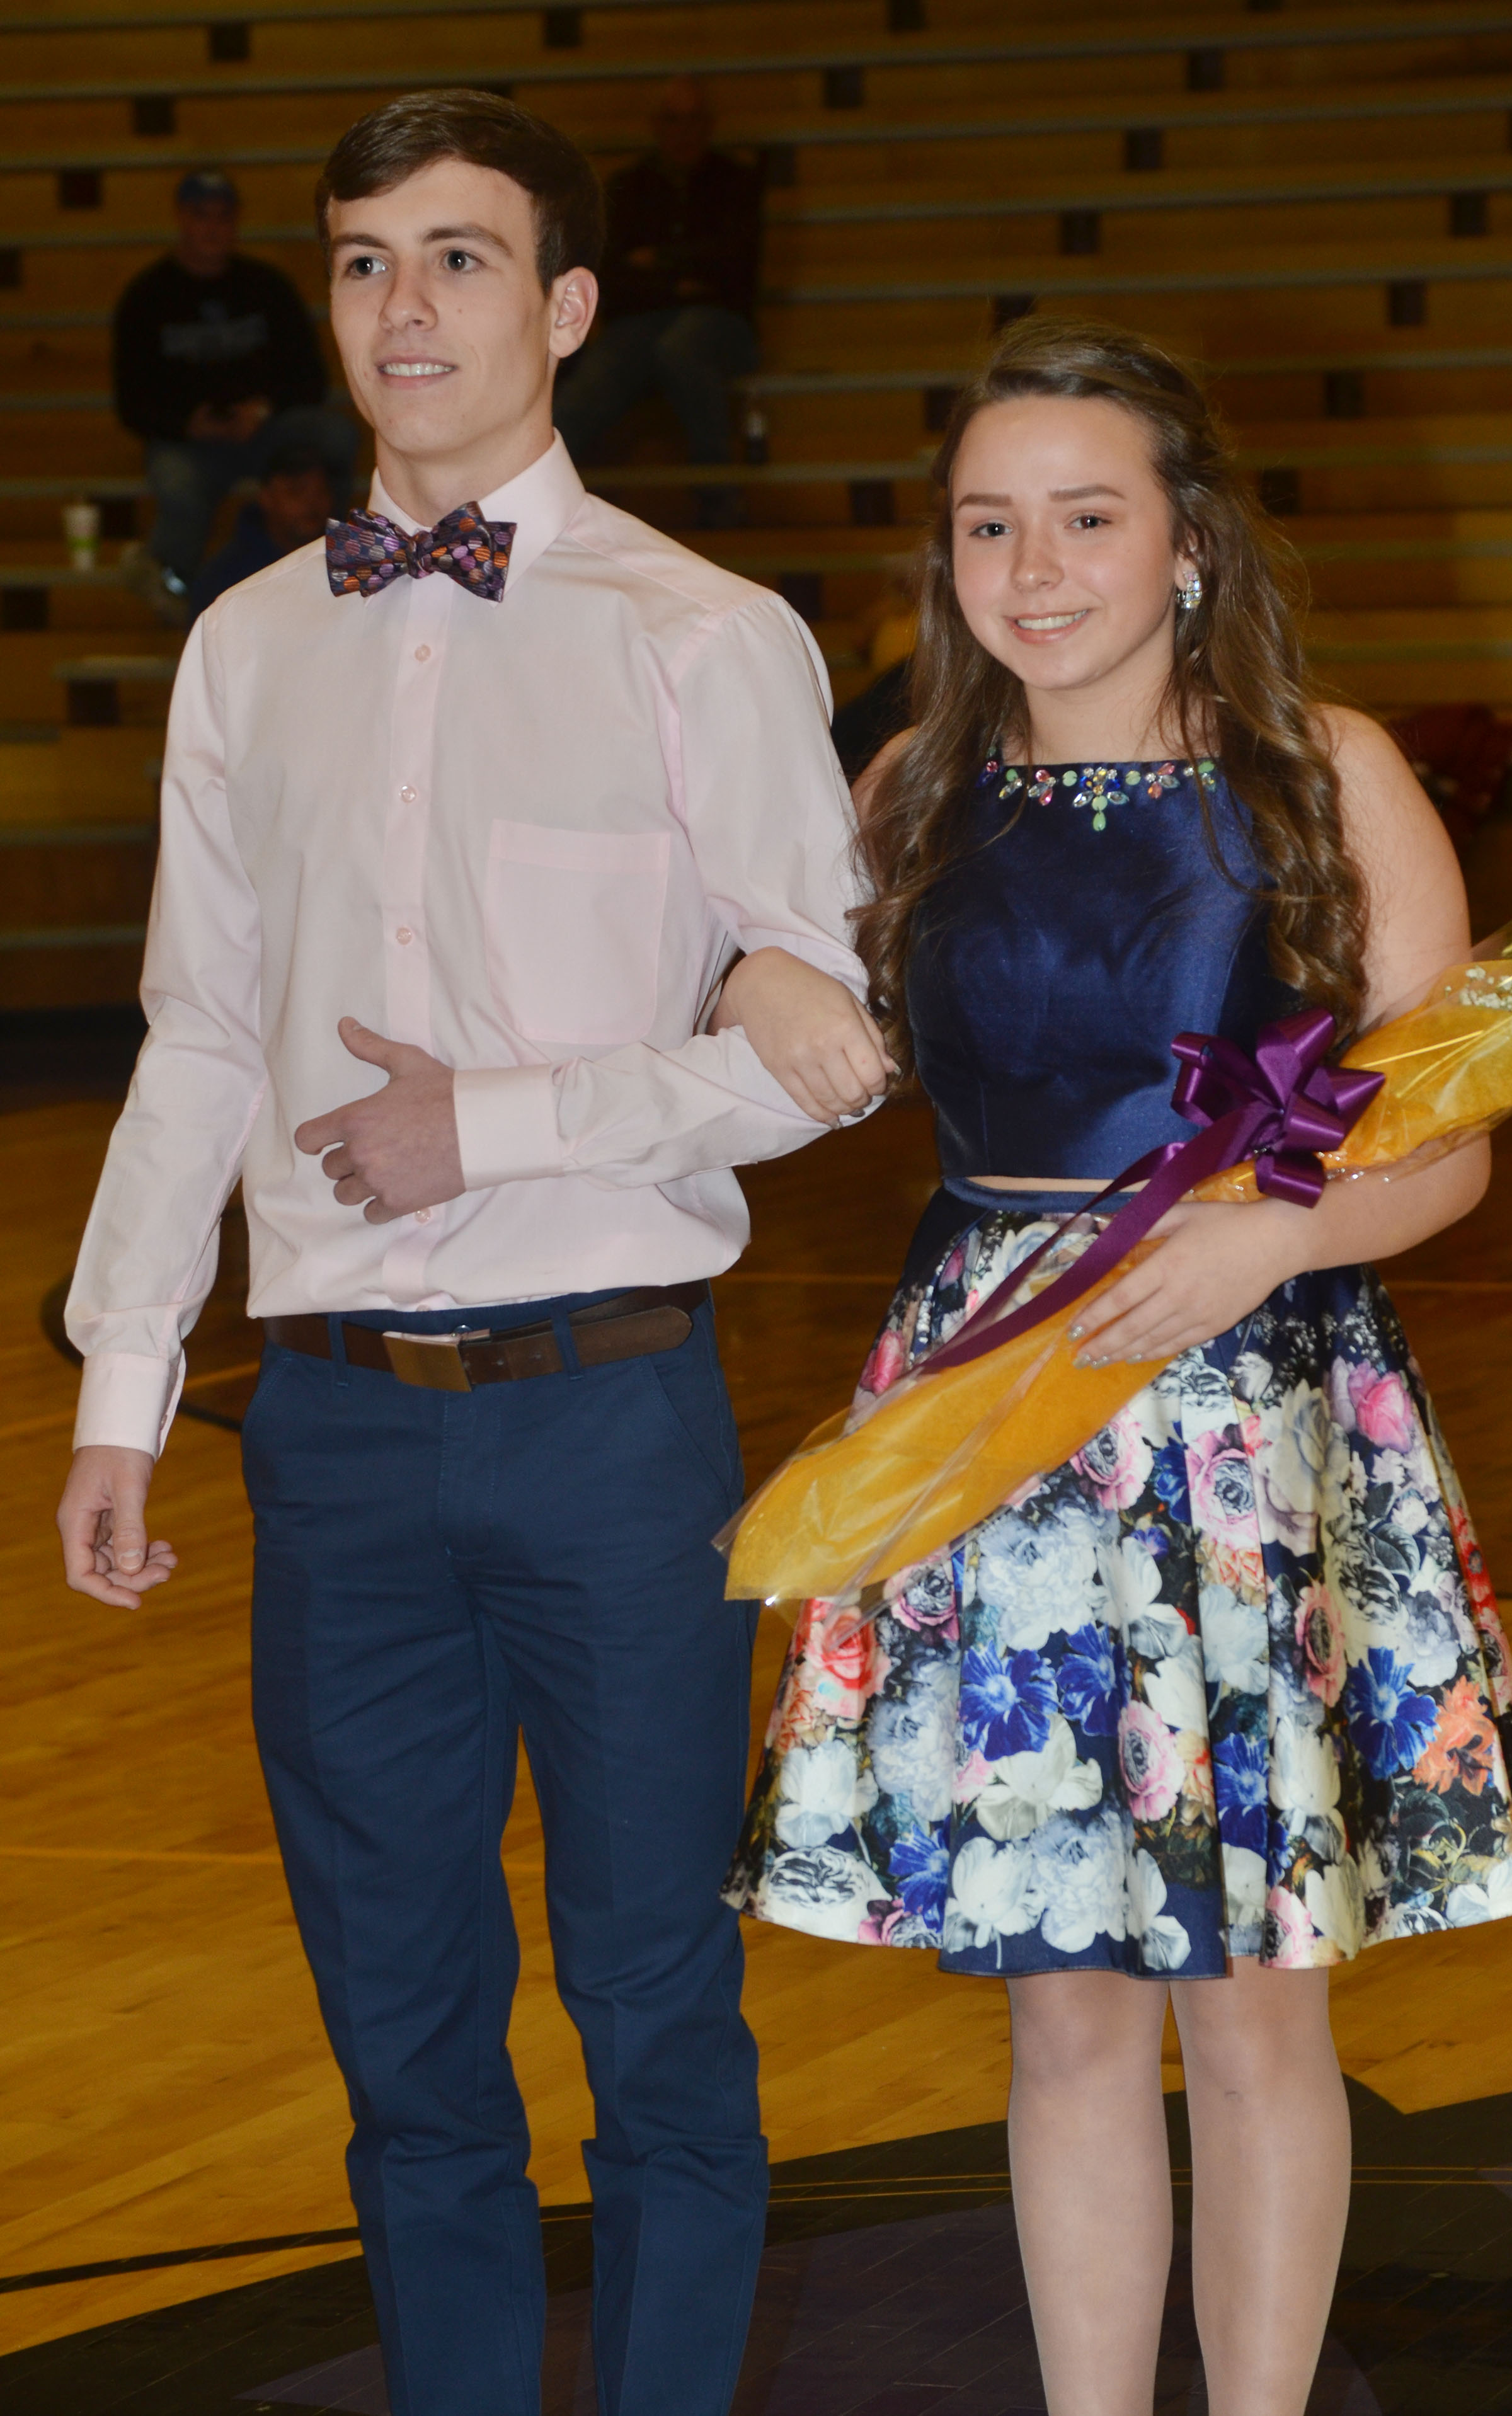 Christa Riggs and Layton Hord represented the CHS sophomore class.